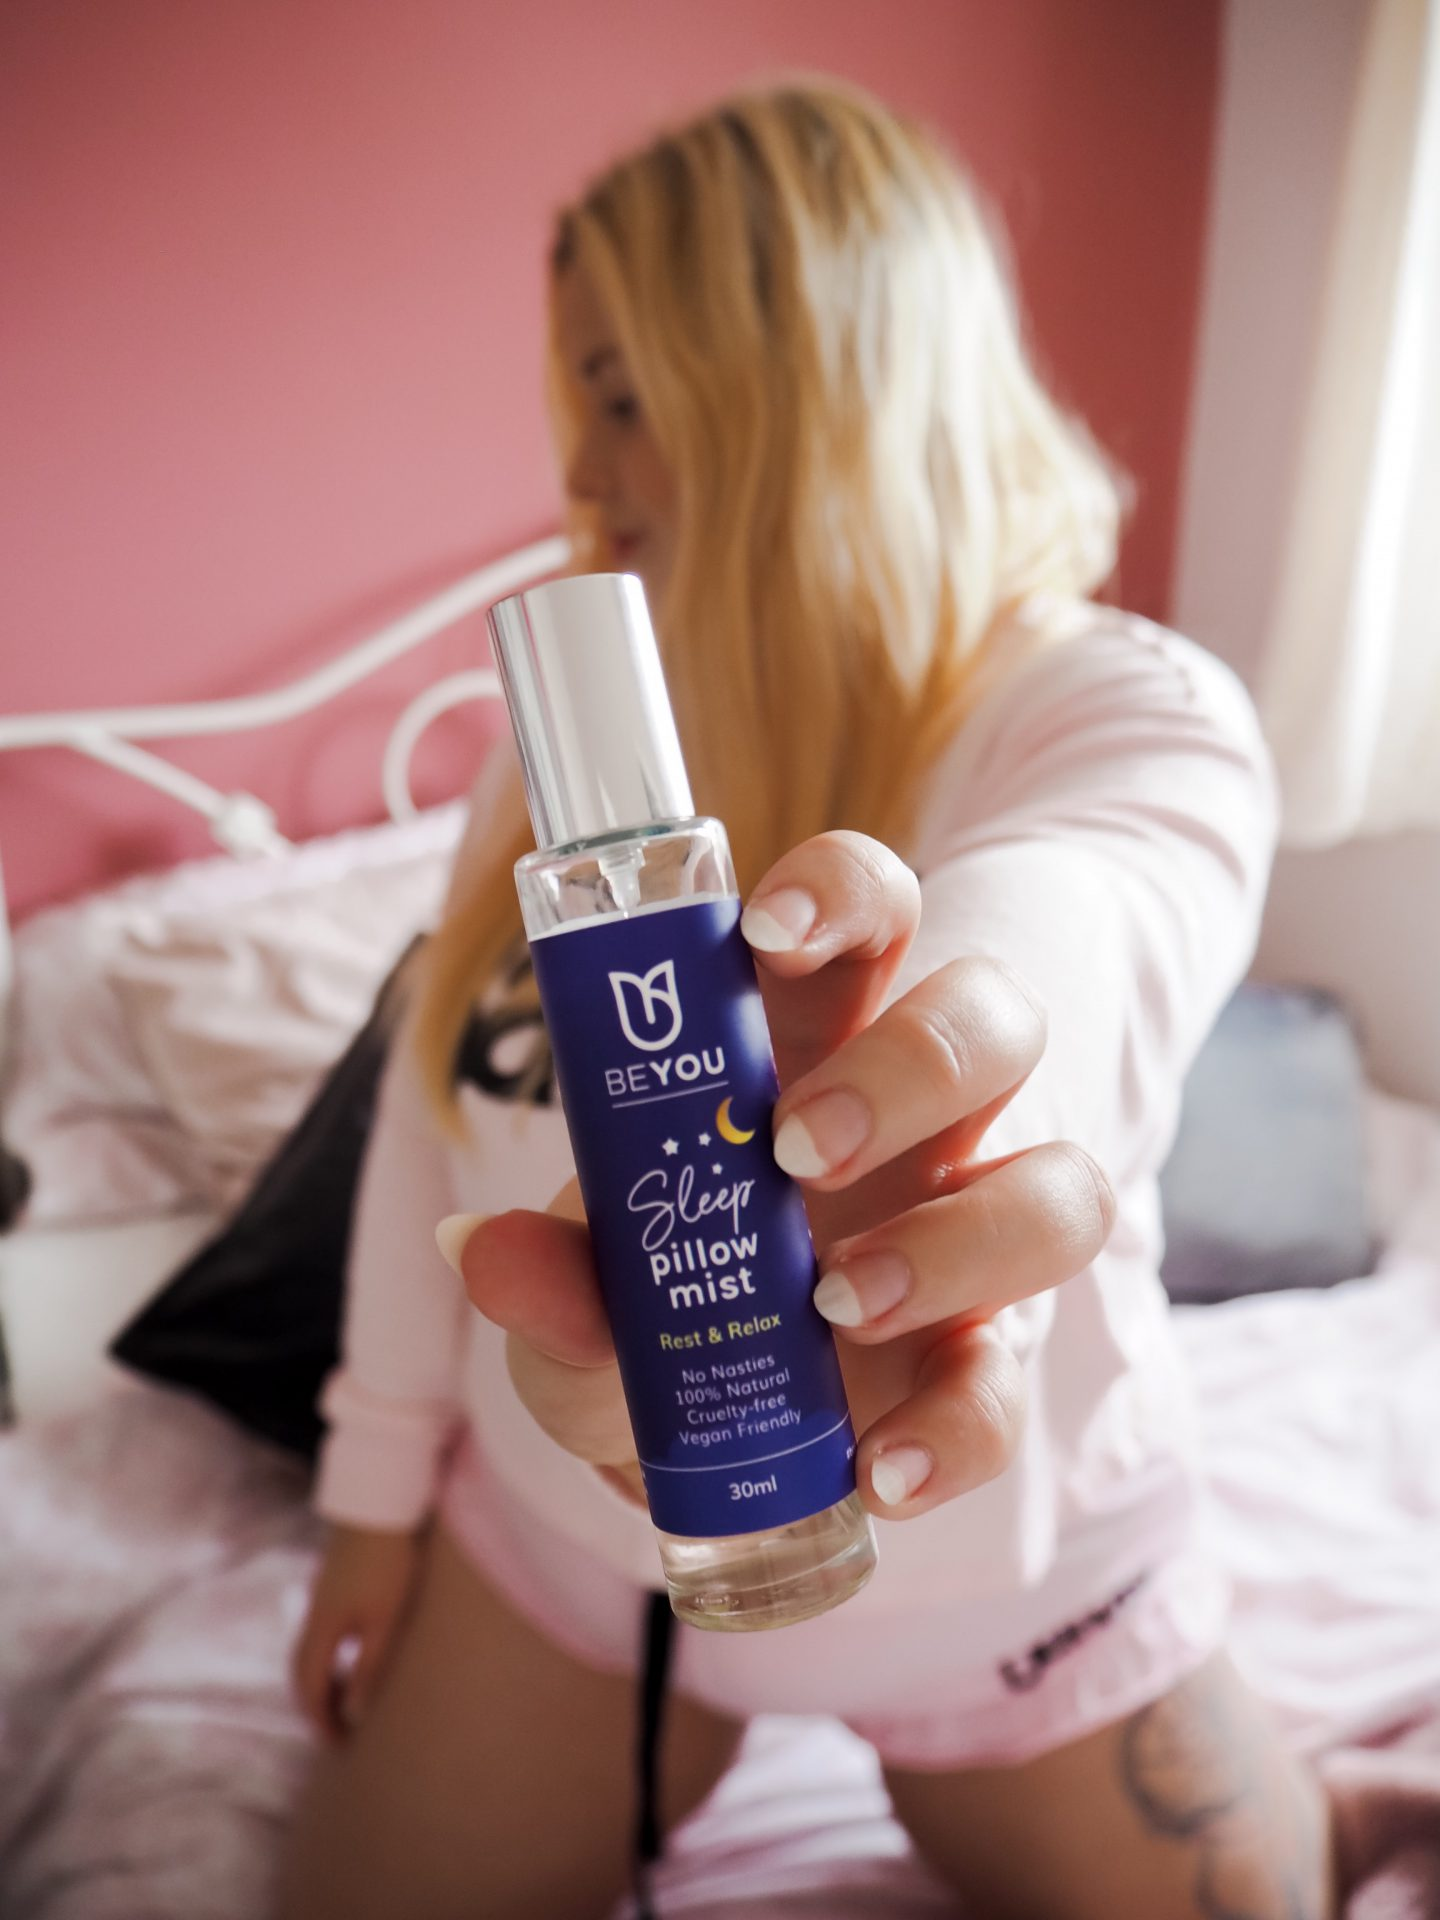 BeYou Sleep Pillow Mist and Little Blonde Blog x